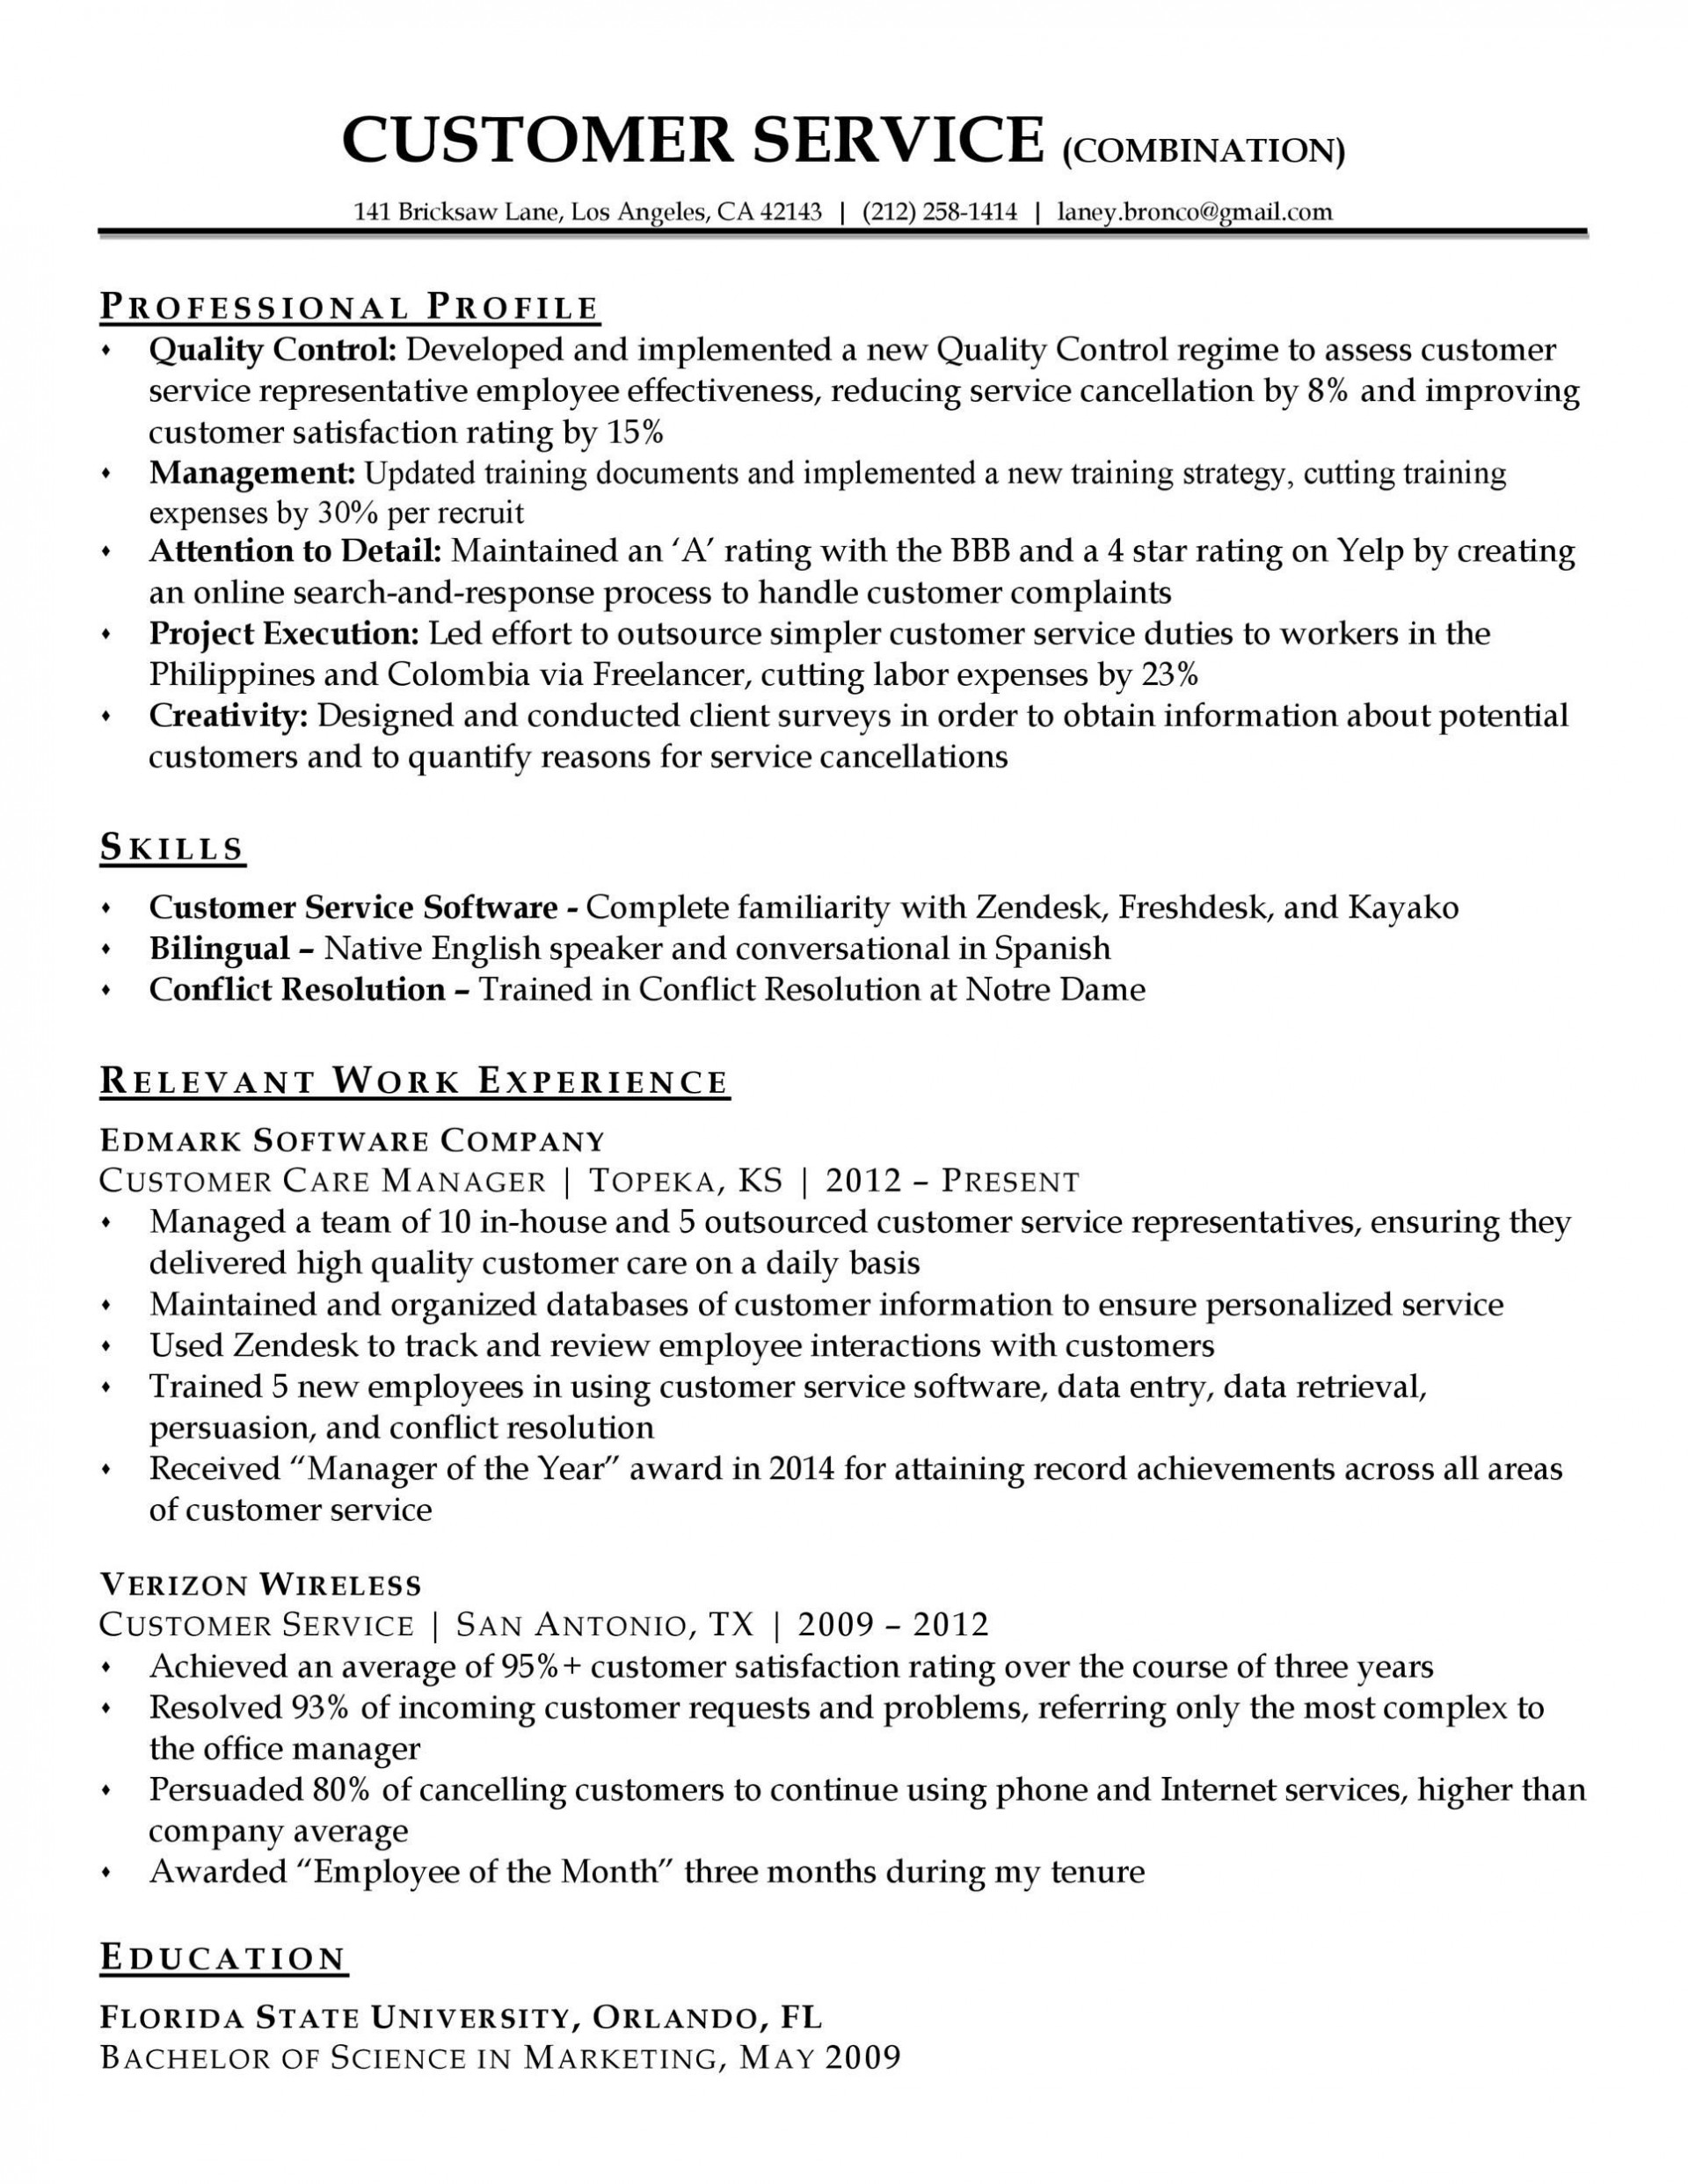 006 Stirring Customer Service Resume Template Image  Cv1920